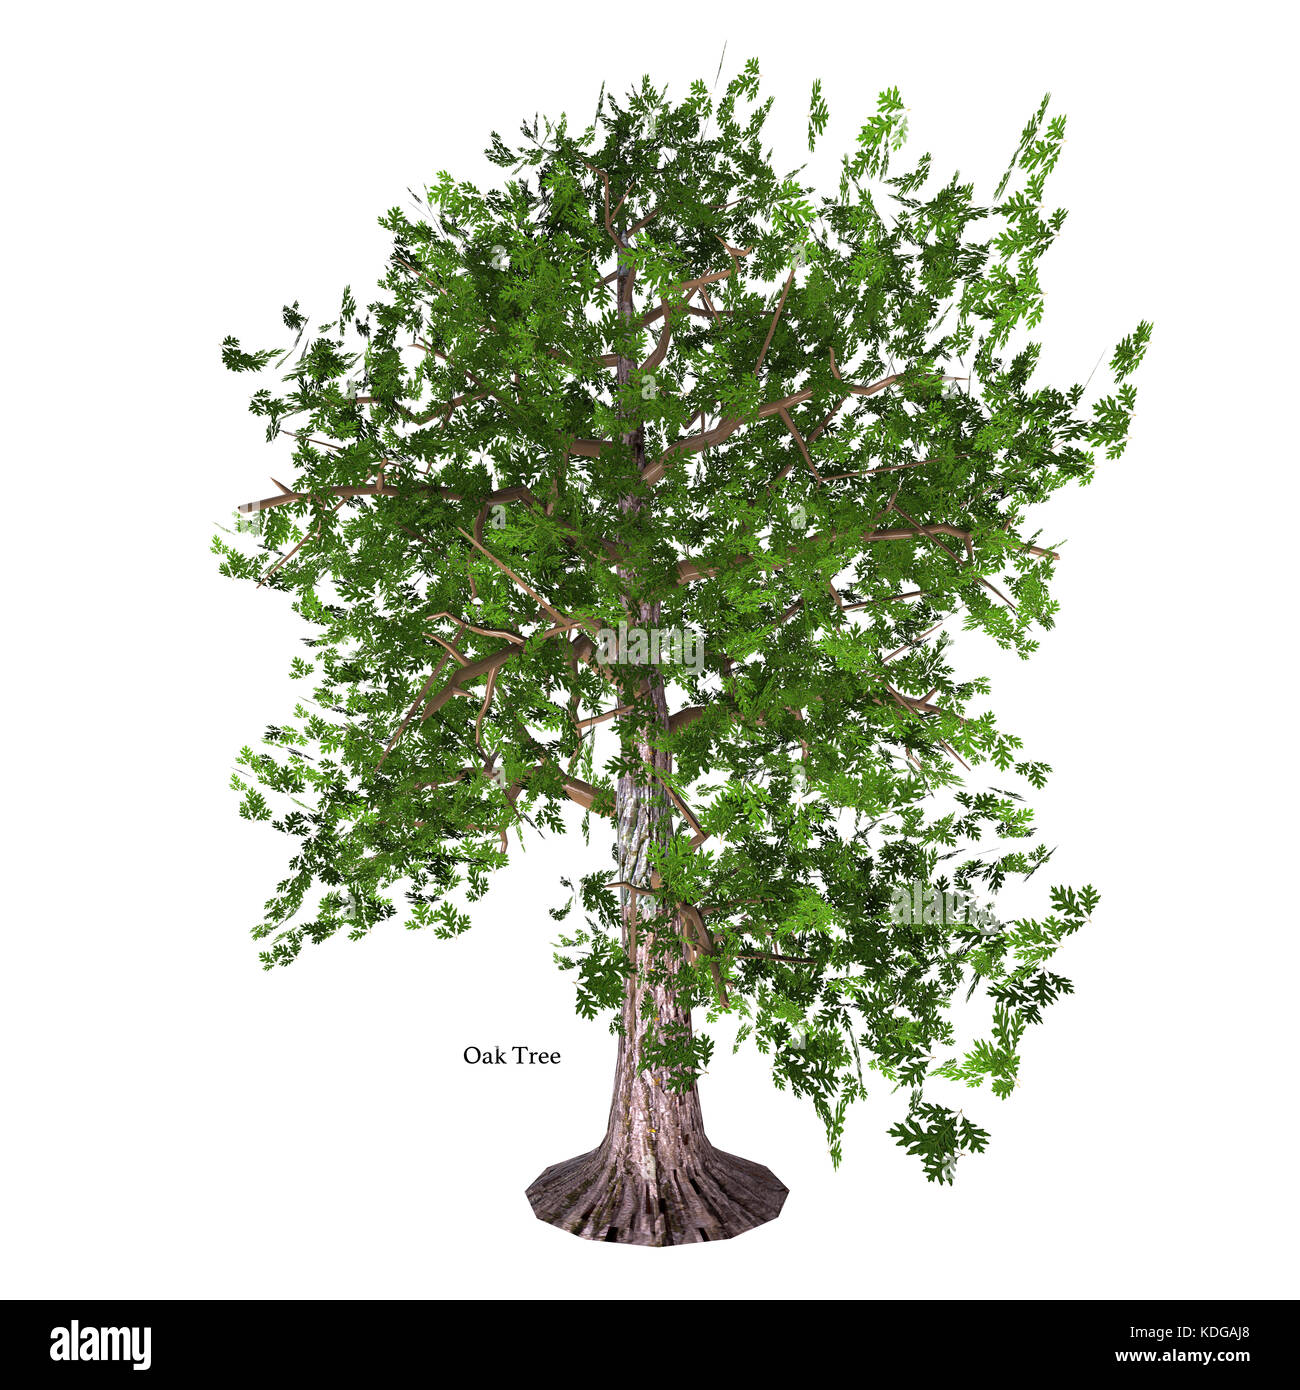 The Oak tree comes in 600 different species as a deciduous or evergreen variety and develops an acorn fruit nut. - Stock Image